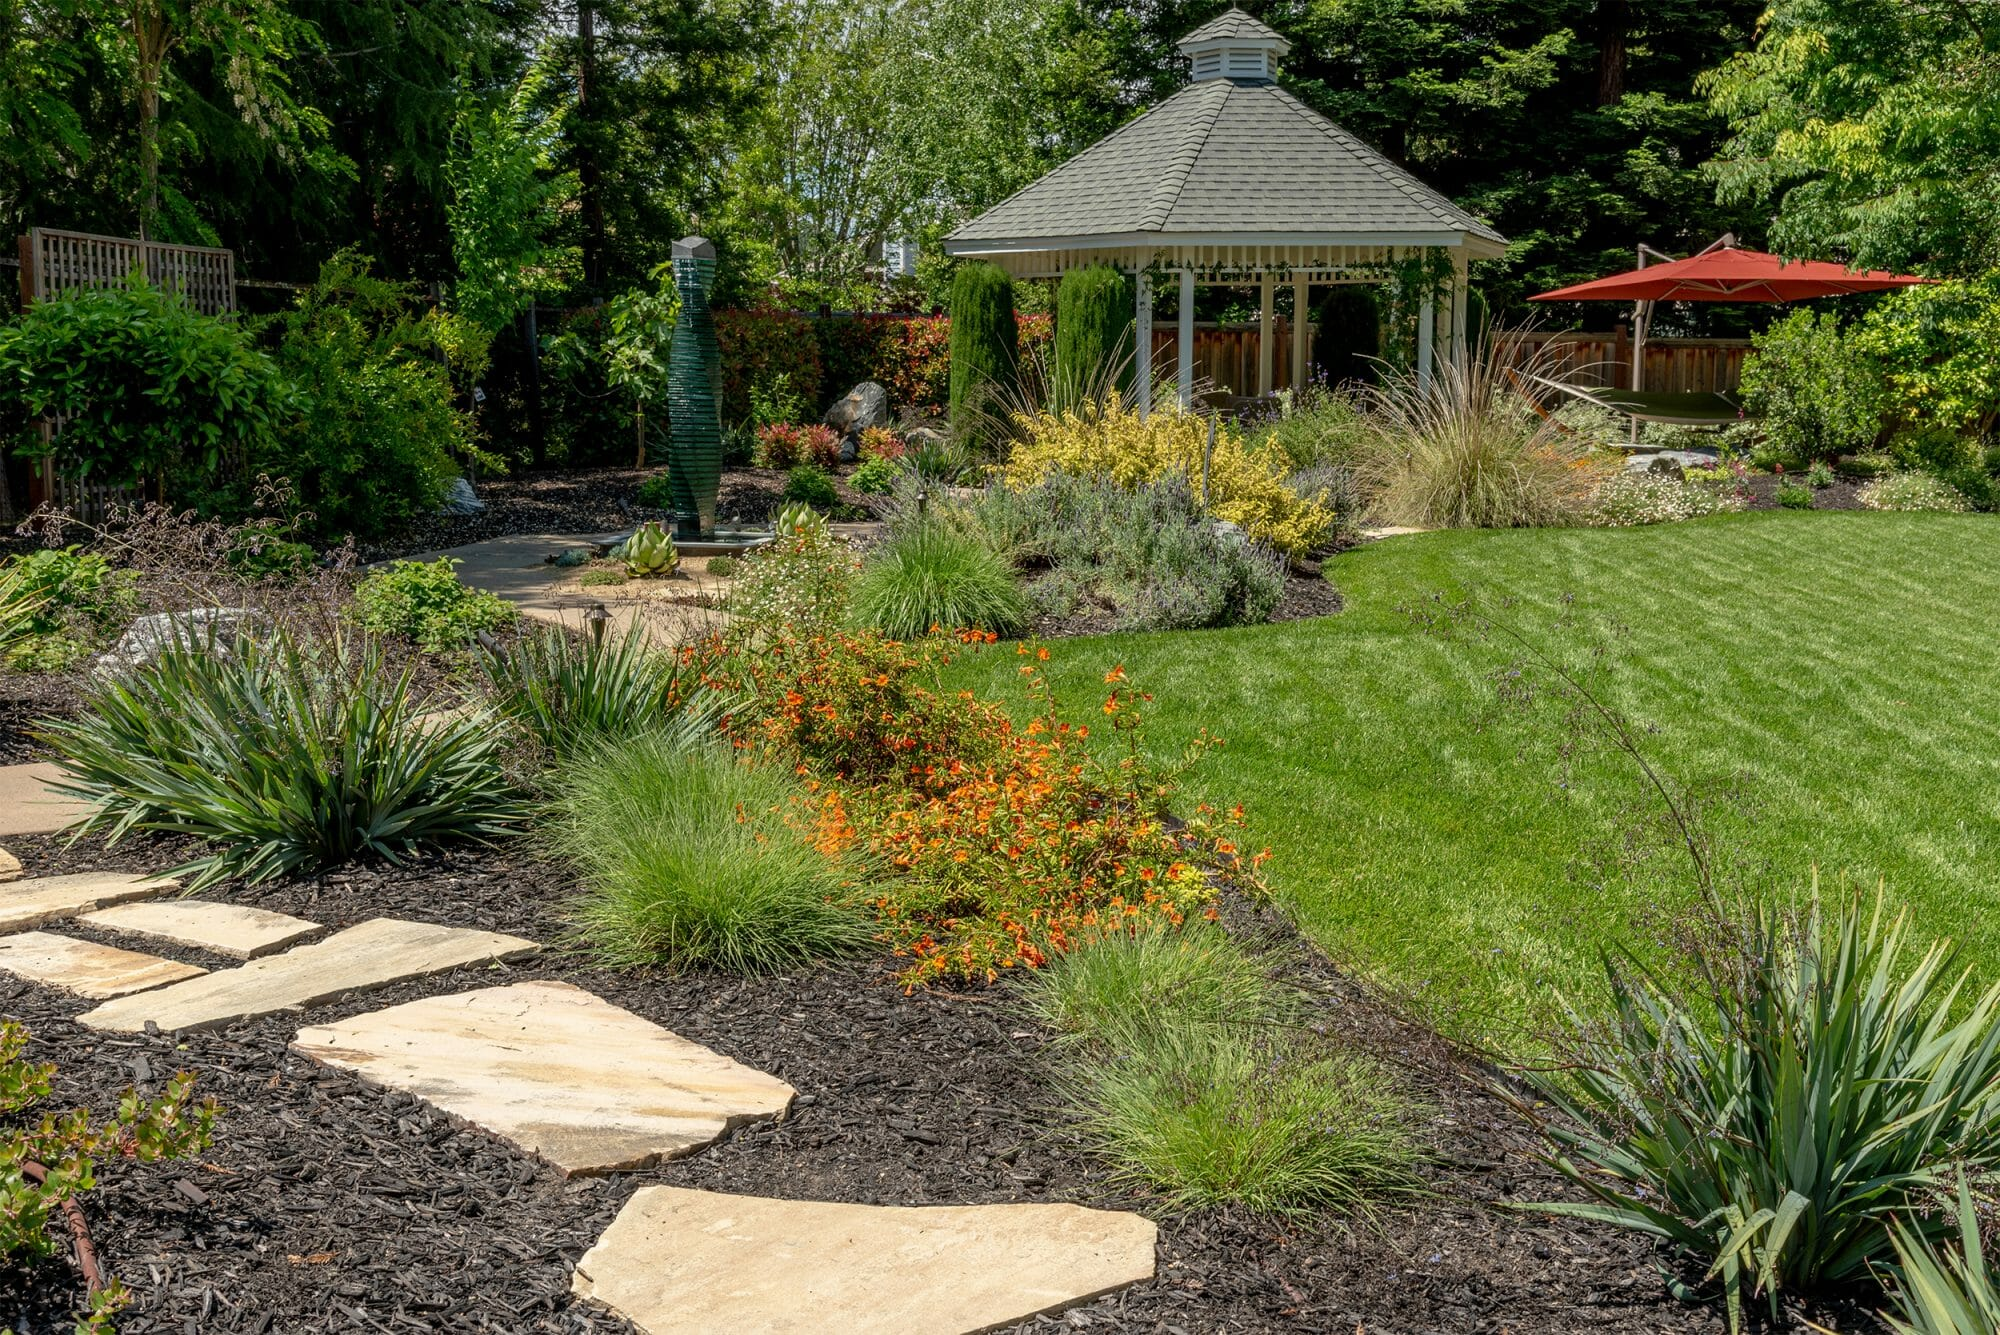 Flagstone path with grasses